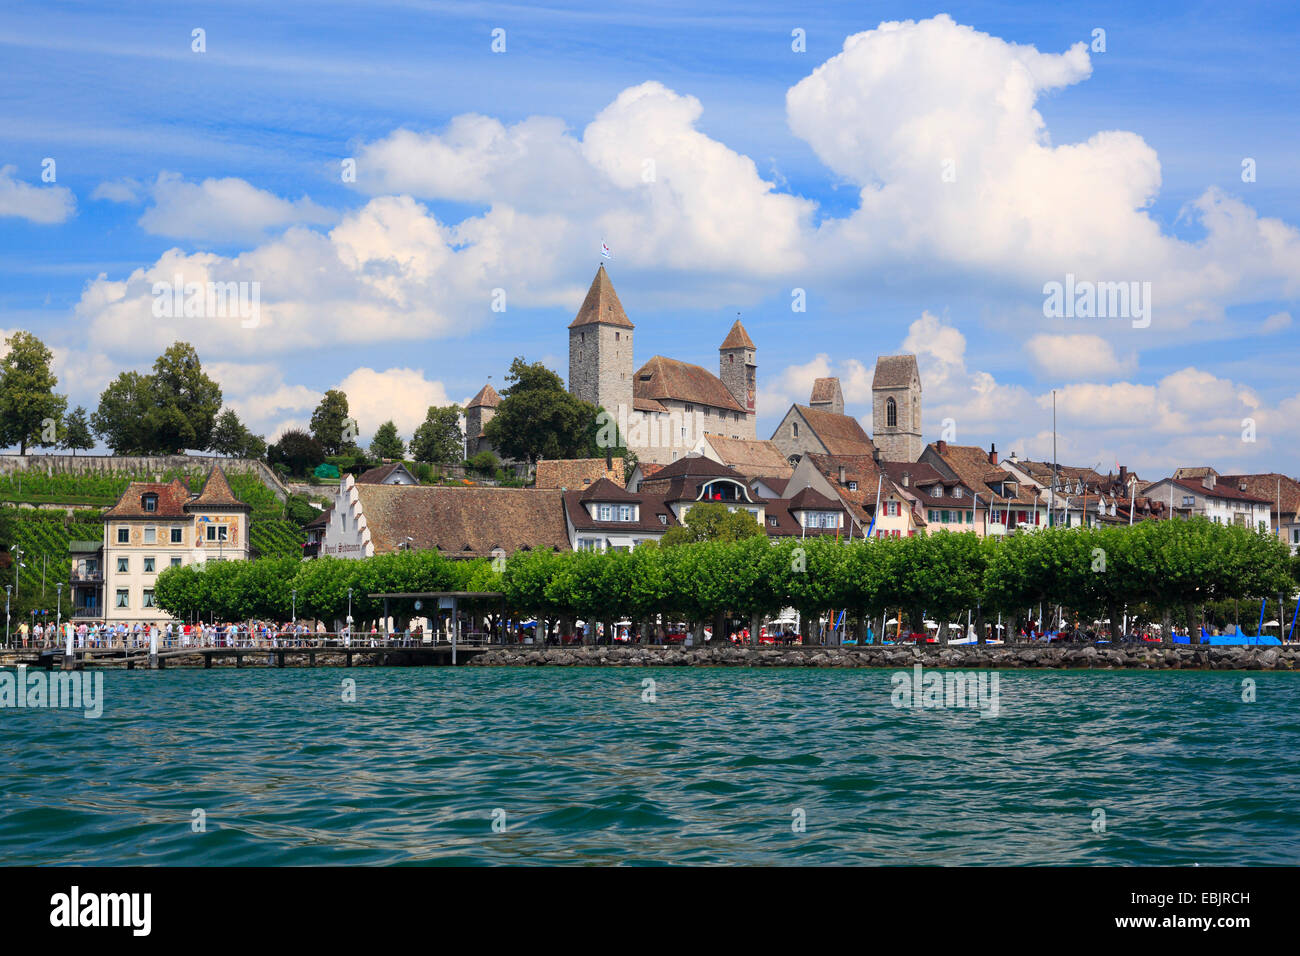 Rapperswil Castle on shore of the Lake Zurich, Switzerland, St. Gallen - Stock Image